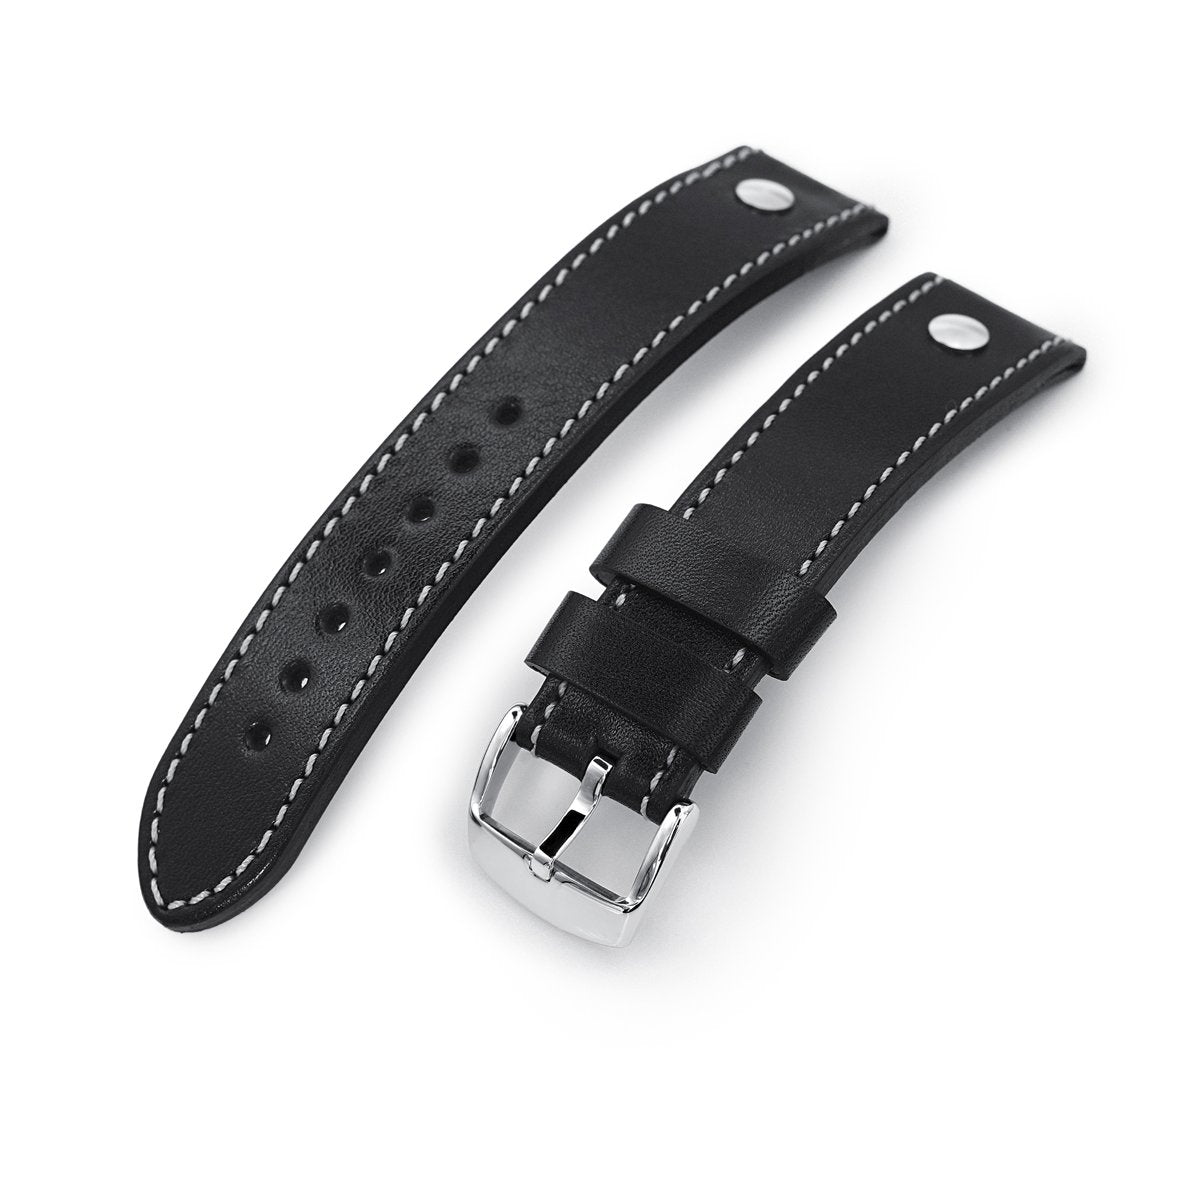 German made 22mm Sturdy Semi-gloss Black Saddle Leather with Rivet Watch Band Polished Strapcode Watch Bands